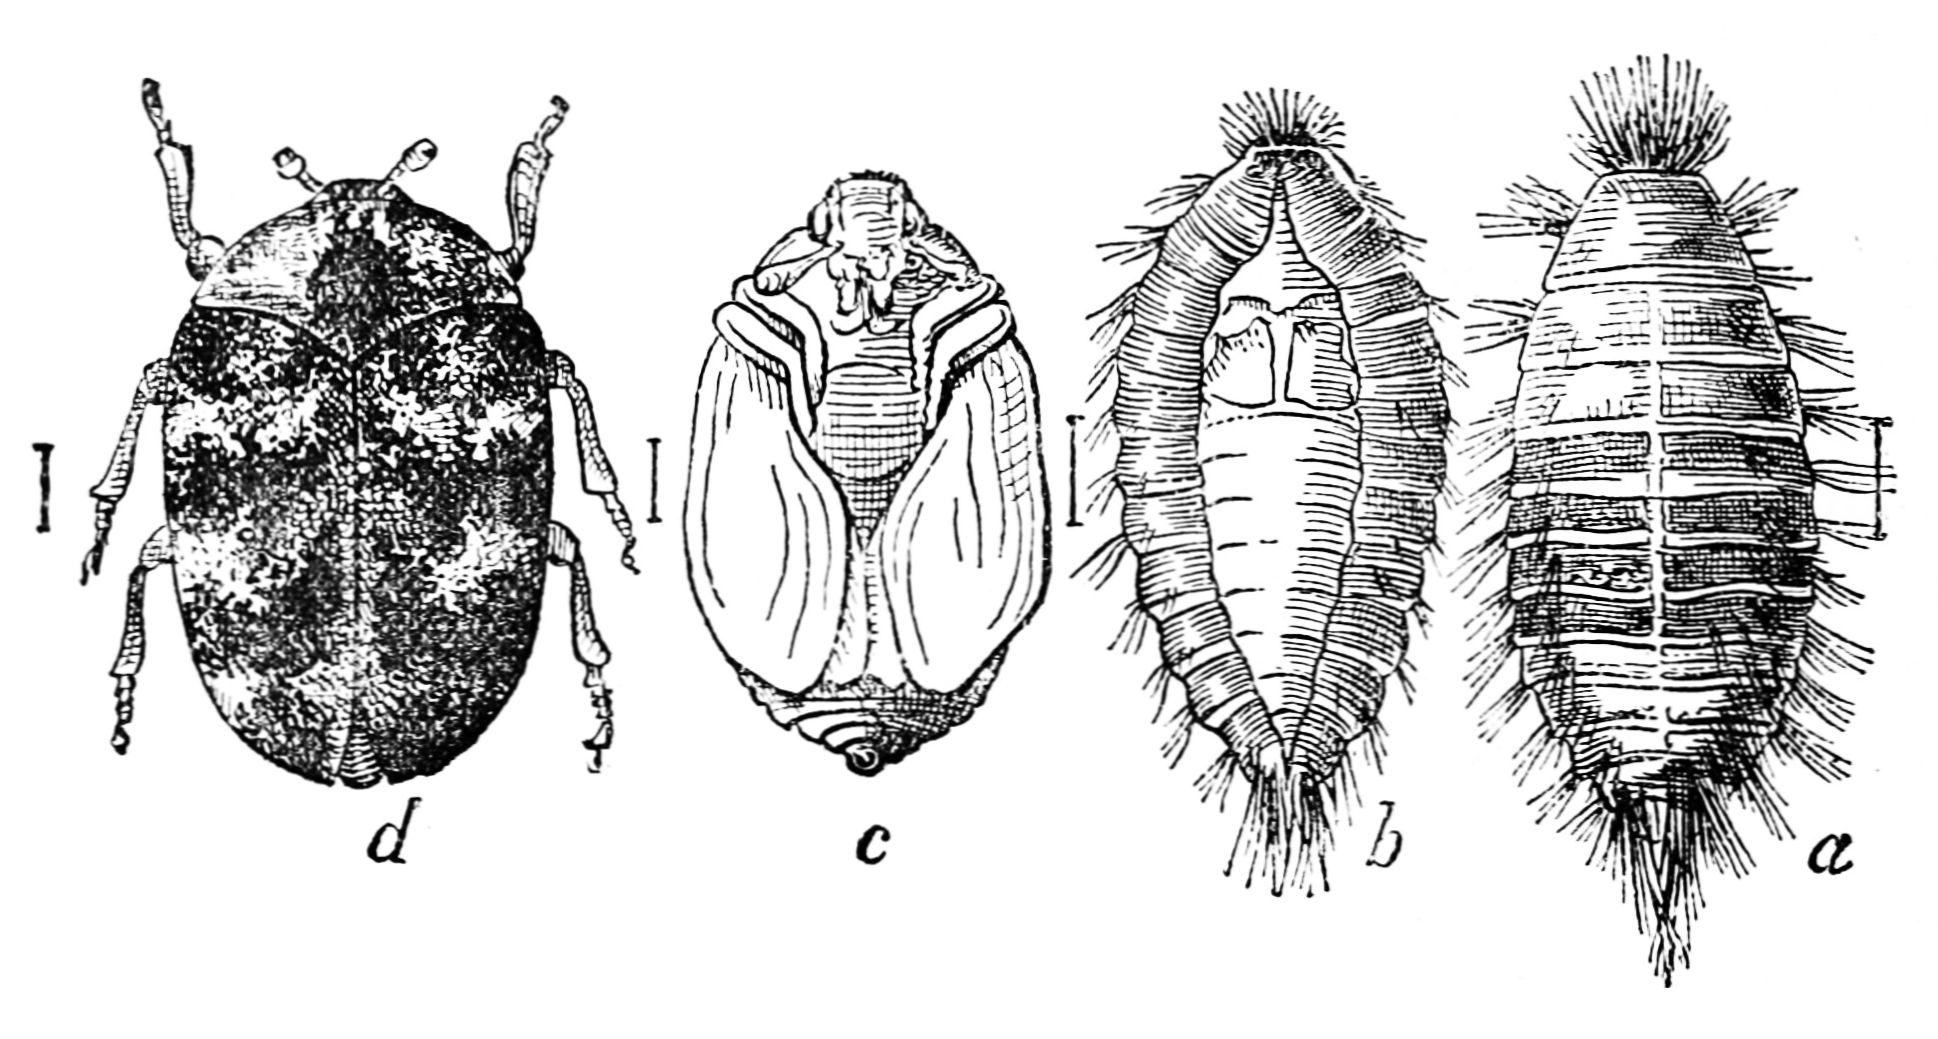 how to tell bed bugs apart from carpet beetles